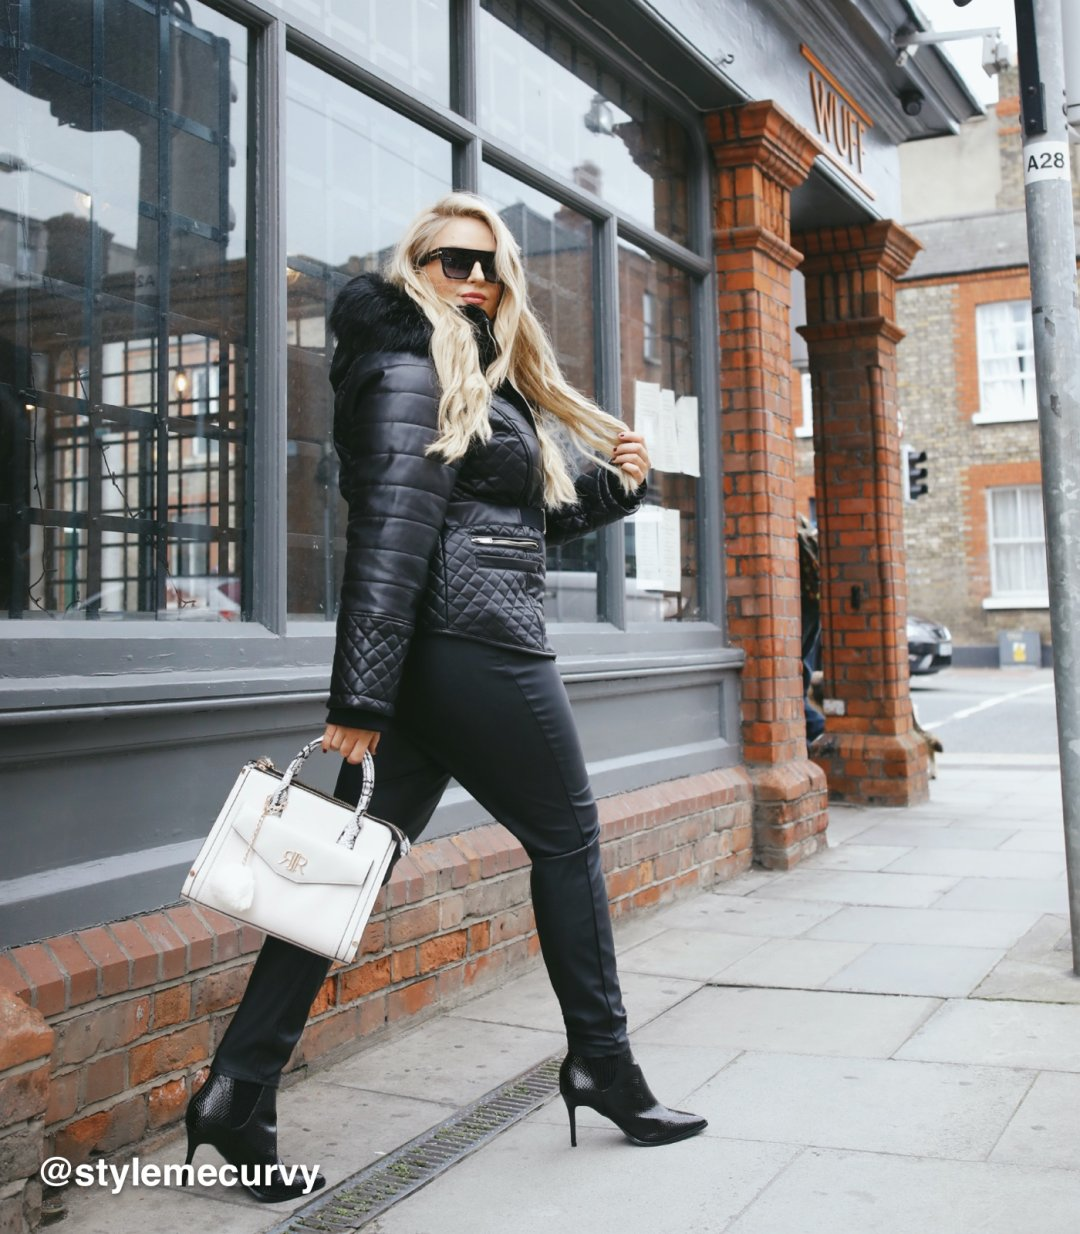 Shop River Island Womens Plus Black faux fur hood belted padded coat, Womens Plus Black coated Molly jeggings, River Island Womens Cream snake print front pocket tote bag, River Island Womens Black wide fit patent pointed toe boots, River Island Womens Black oversized smoke lens sunglasses and more